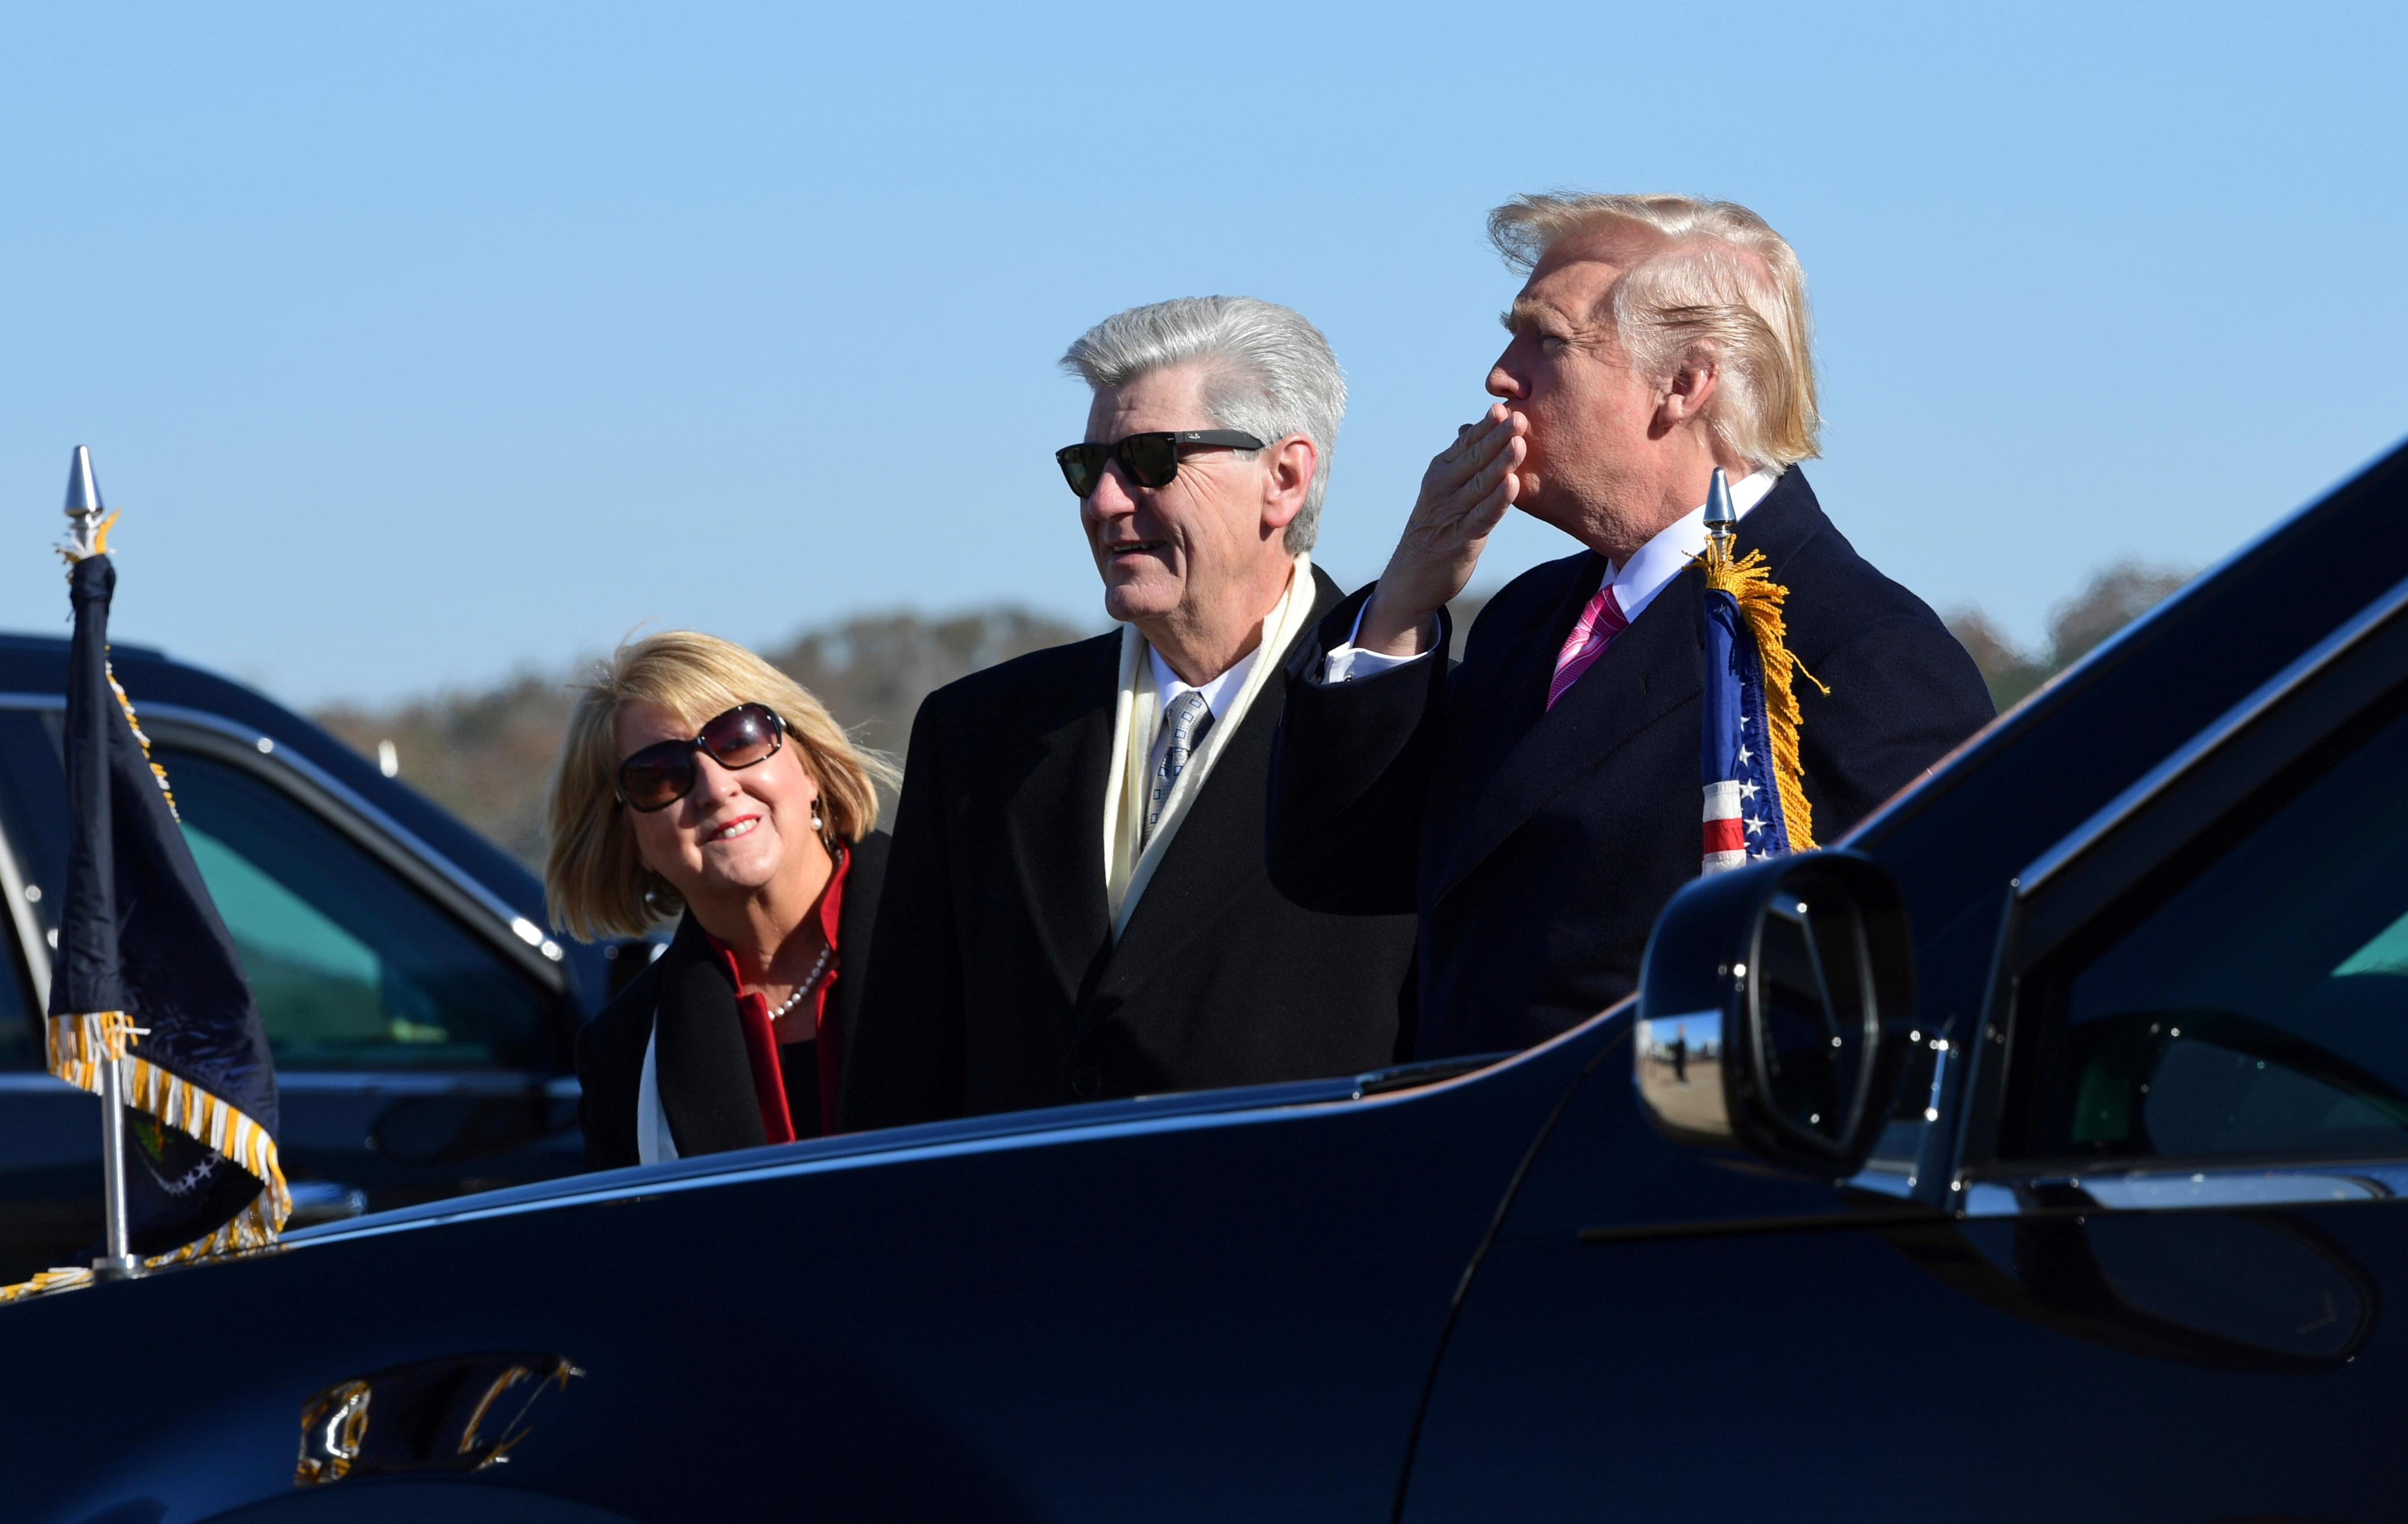 President Donald Trump, right, standing with Mississippi Gov. Phil Bryant, center, blows a kiss to the crowd after arriving on Air Force One at Jackson-Medgar Wiley Evers International Airport in Jackson, Miss., Saturday, Dec. 9, 2017.{&amp;nbsp;} (AP Photo/Susan Walsh)<p></p>